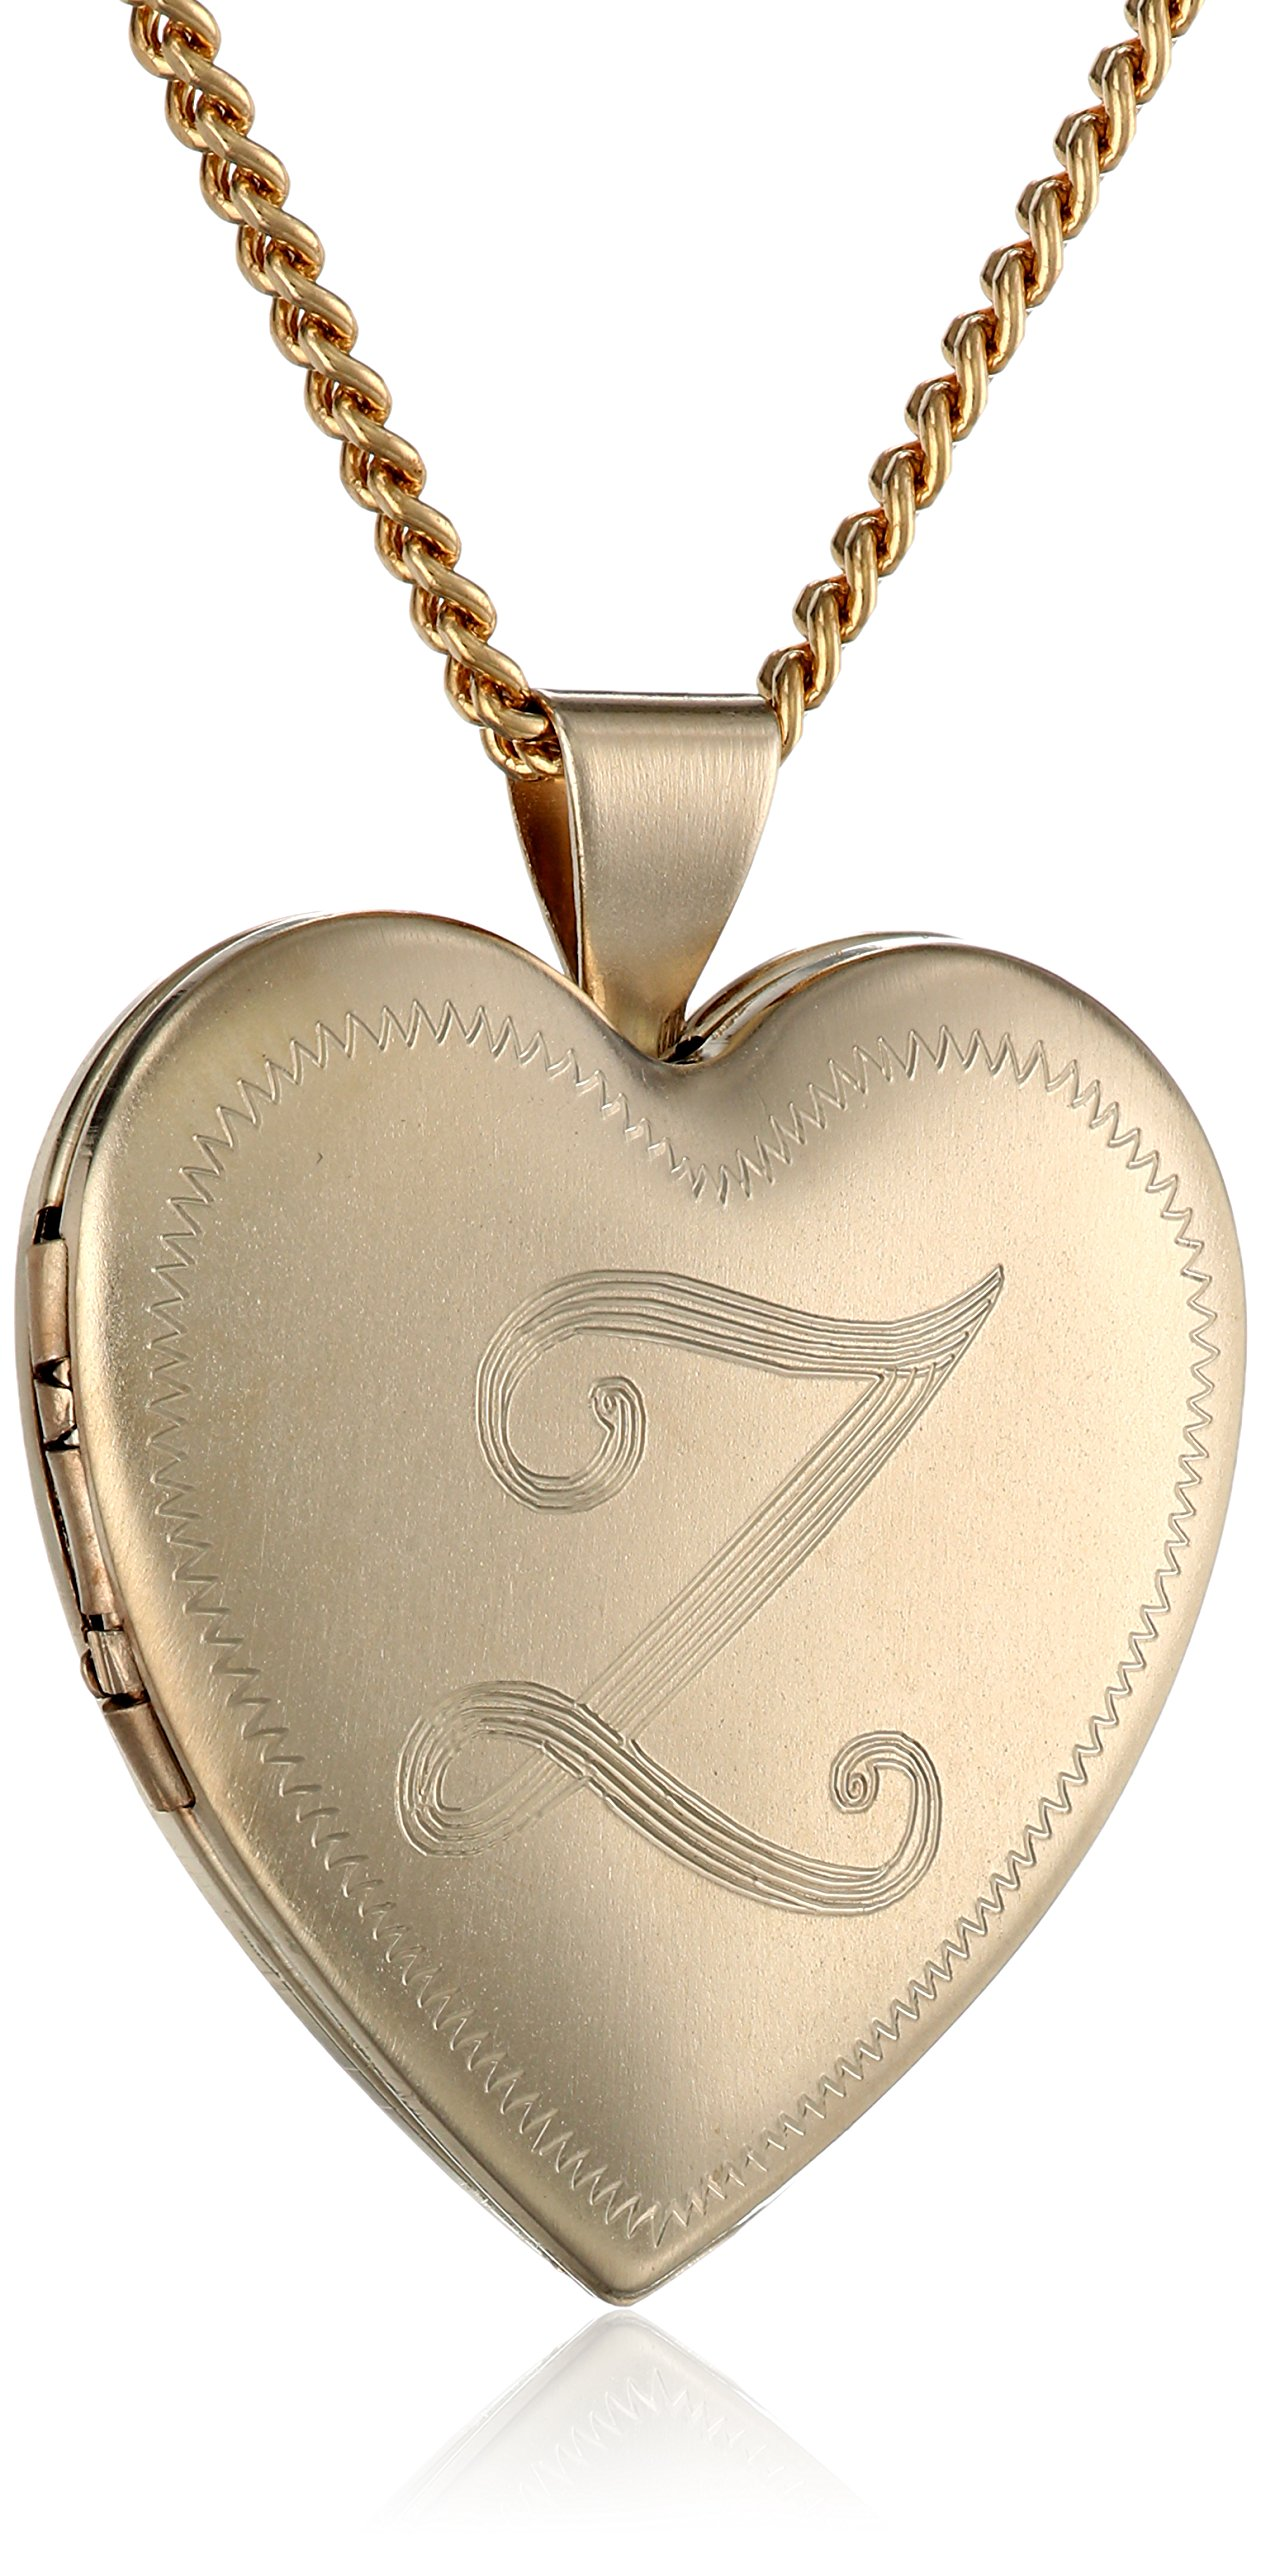 18k Gold-Plated Initial''Z'' Heart 26mm (1'') Locket Necklace, 24''